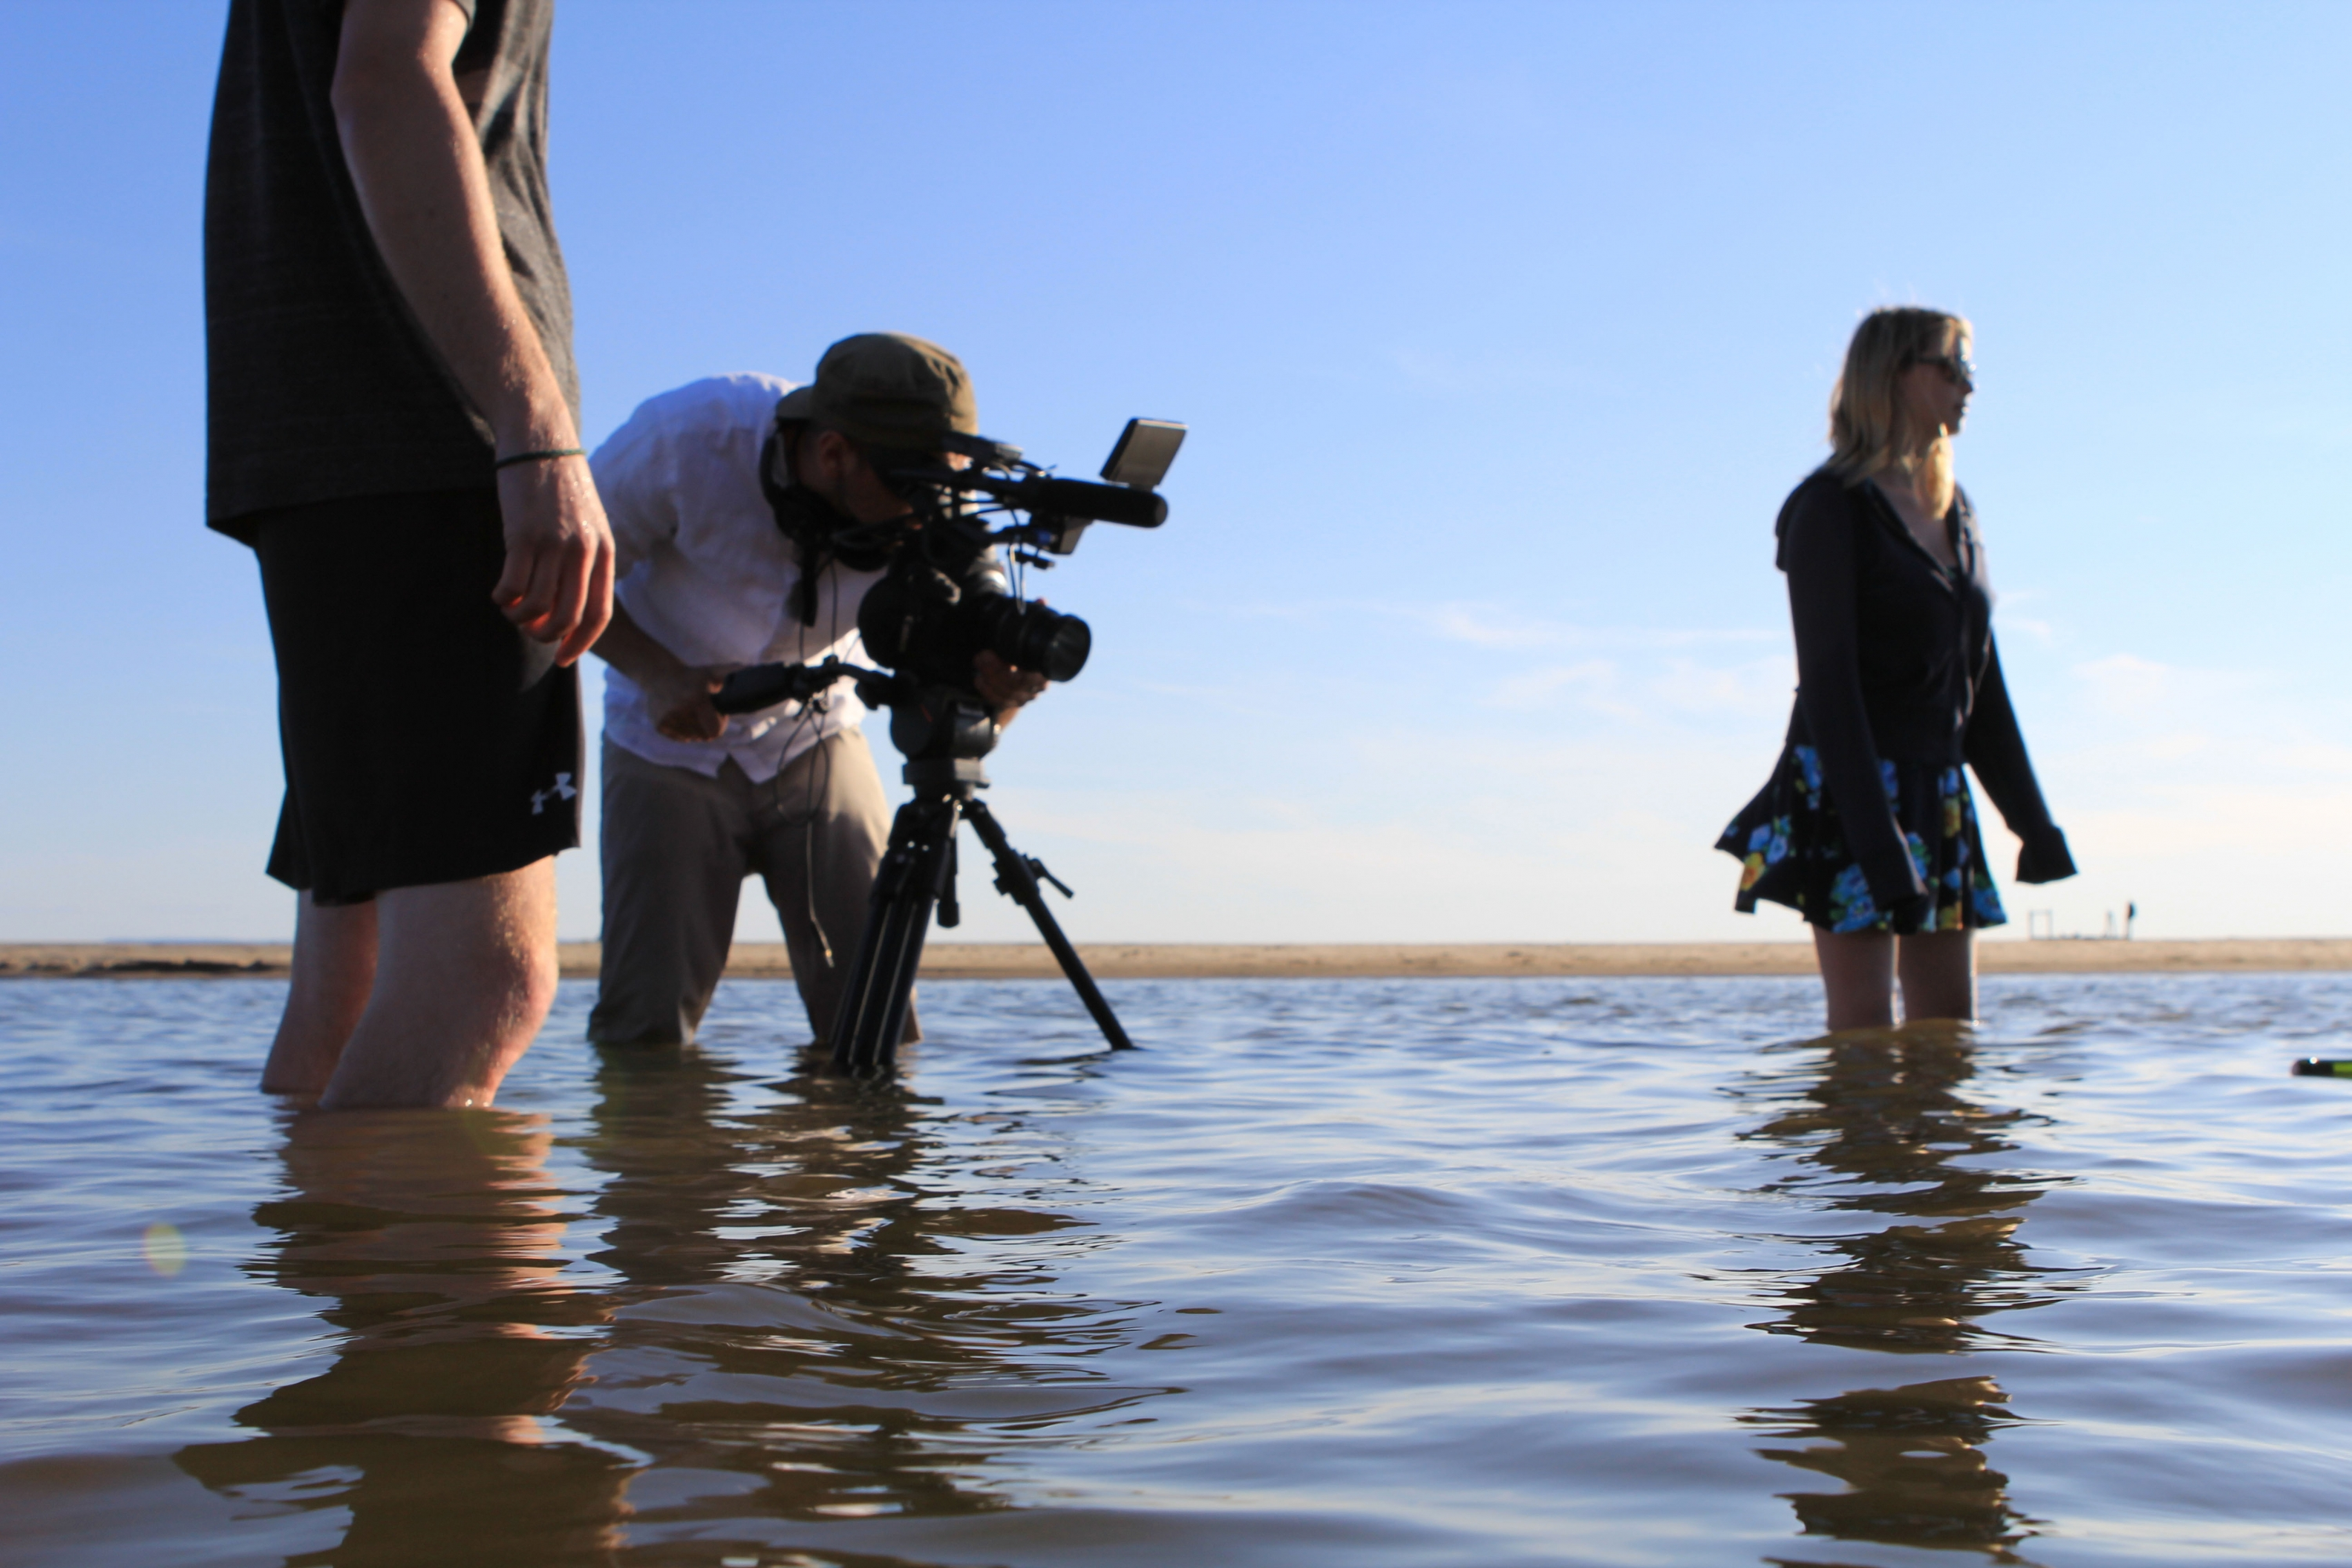 Arc Media filming in the water